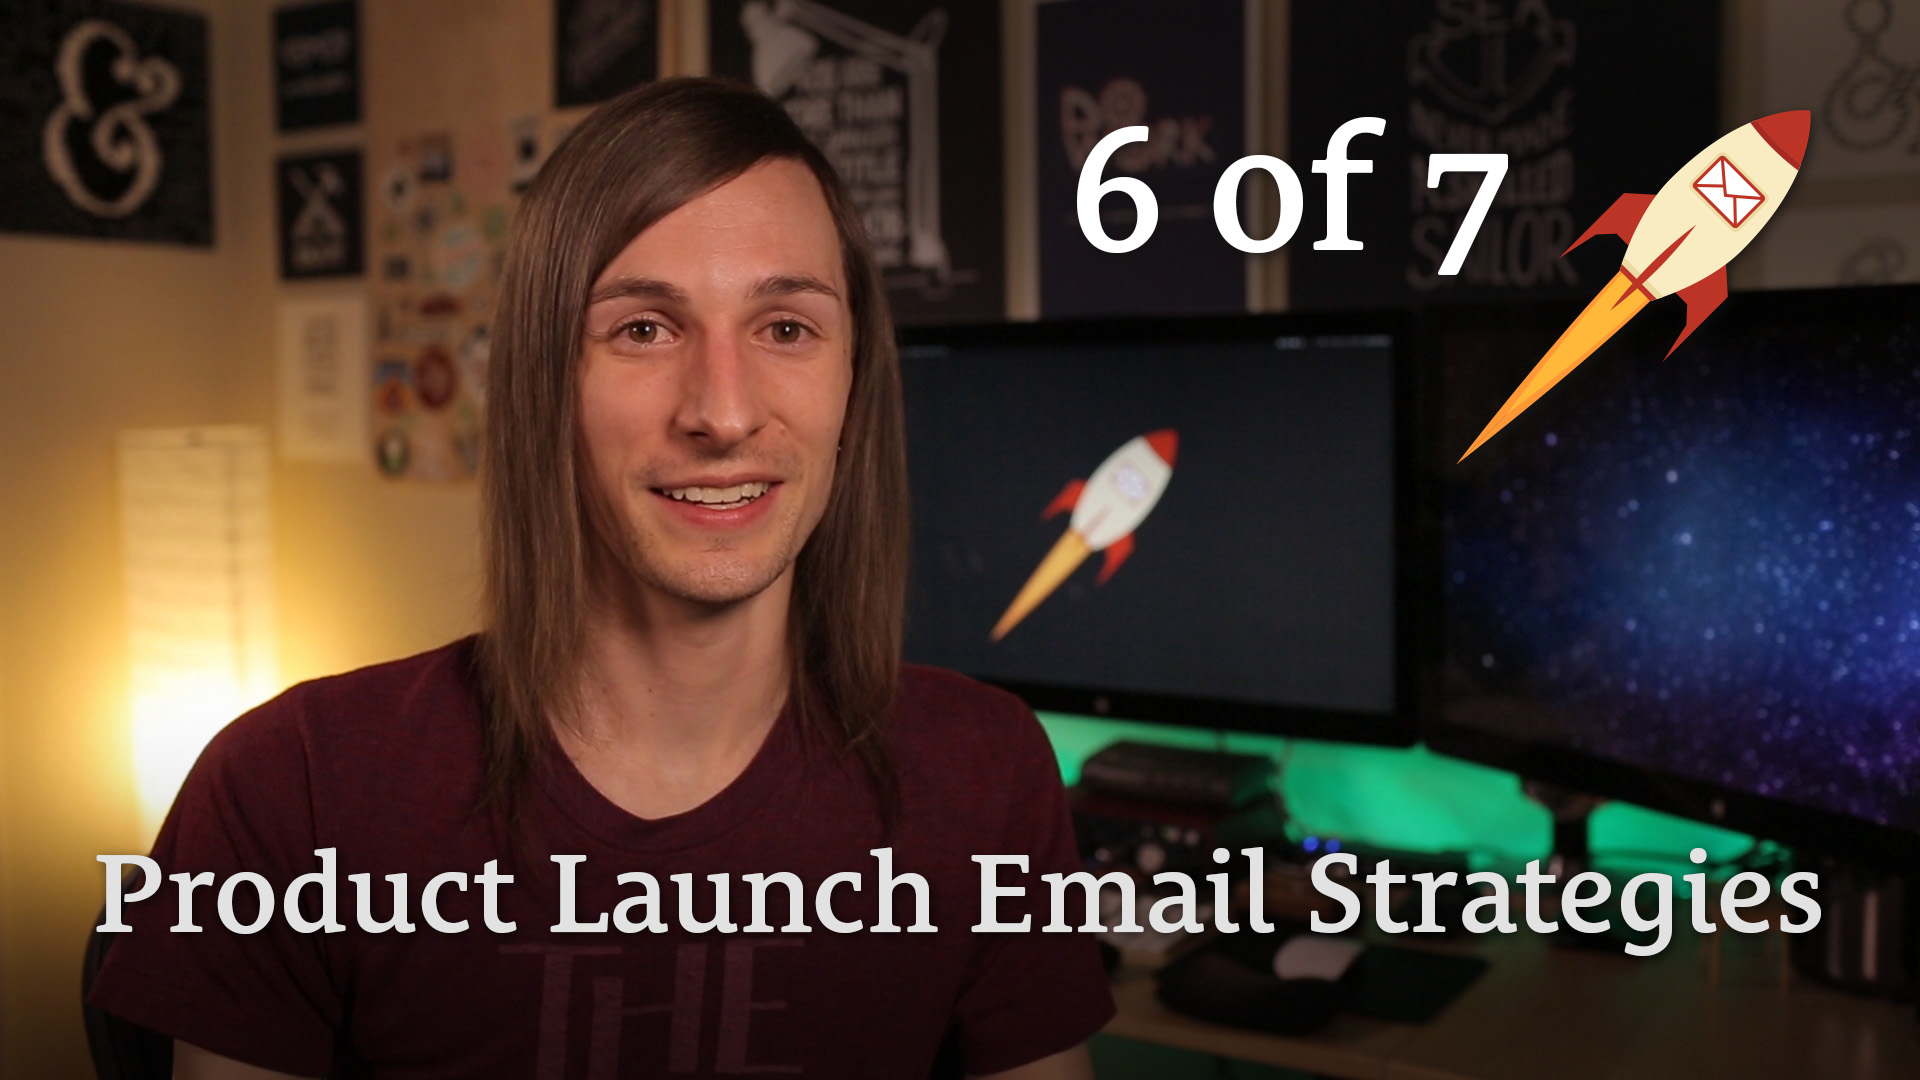 109: (Part 6 of 7): Email Strategies for a Successful Product Launch